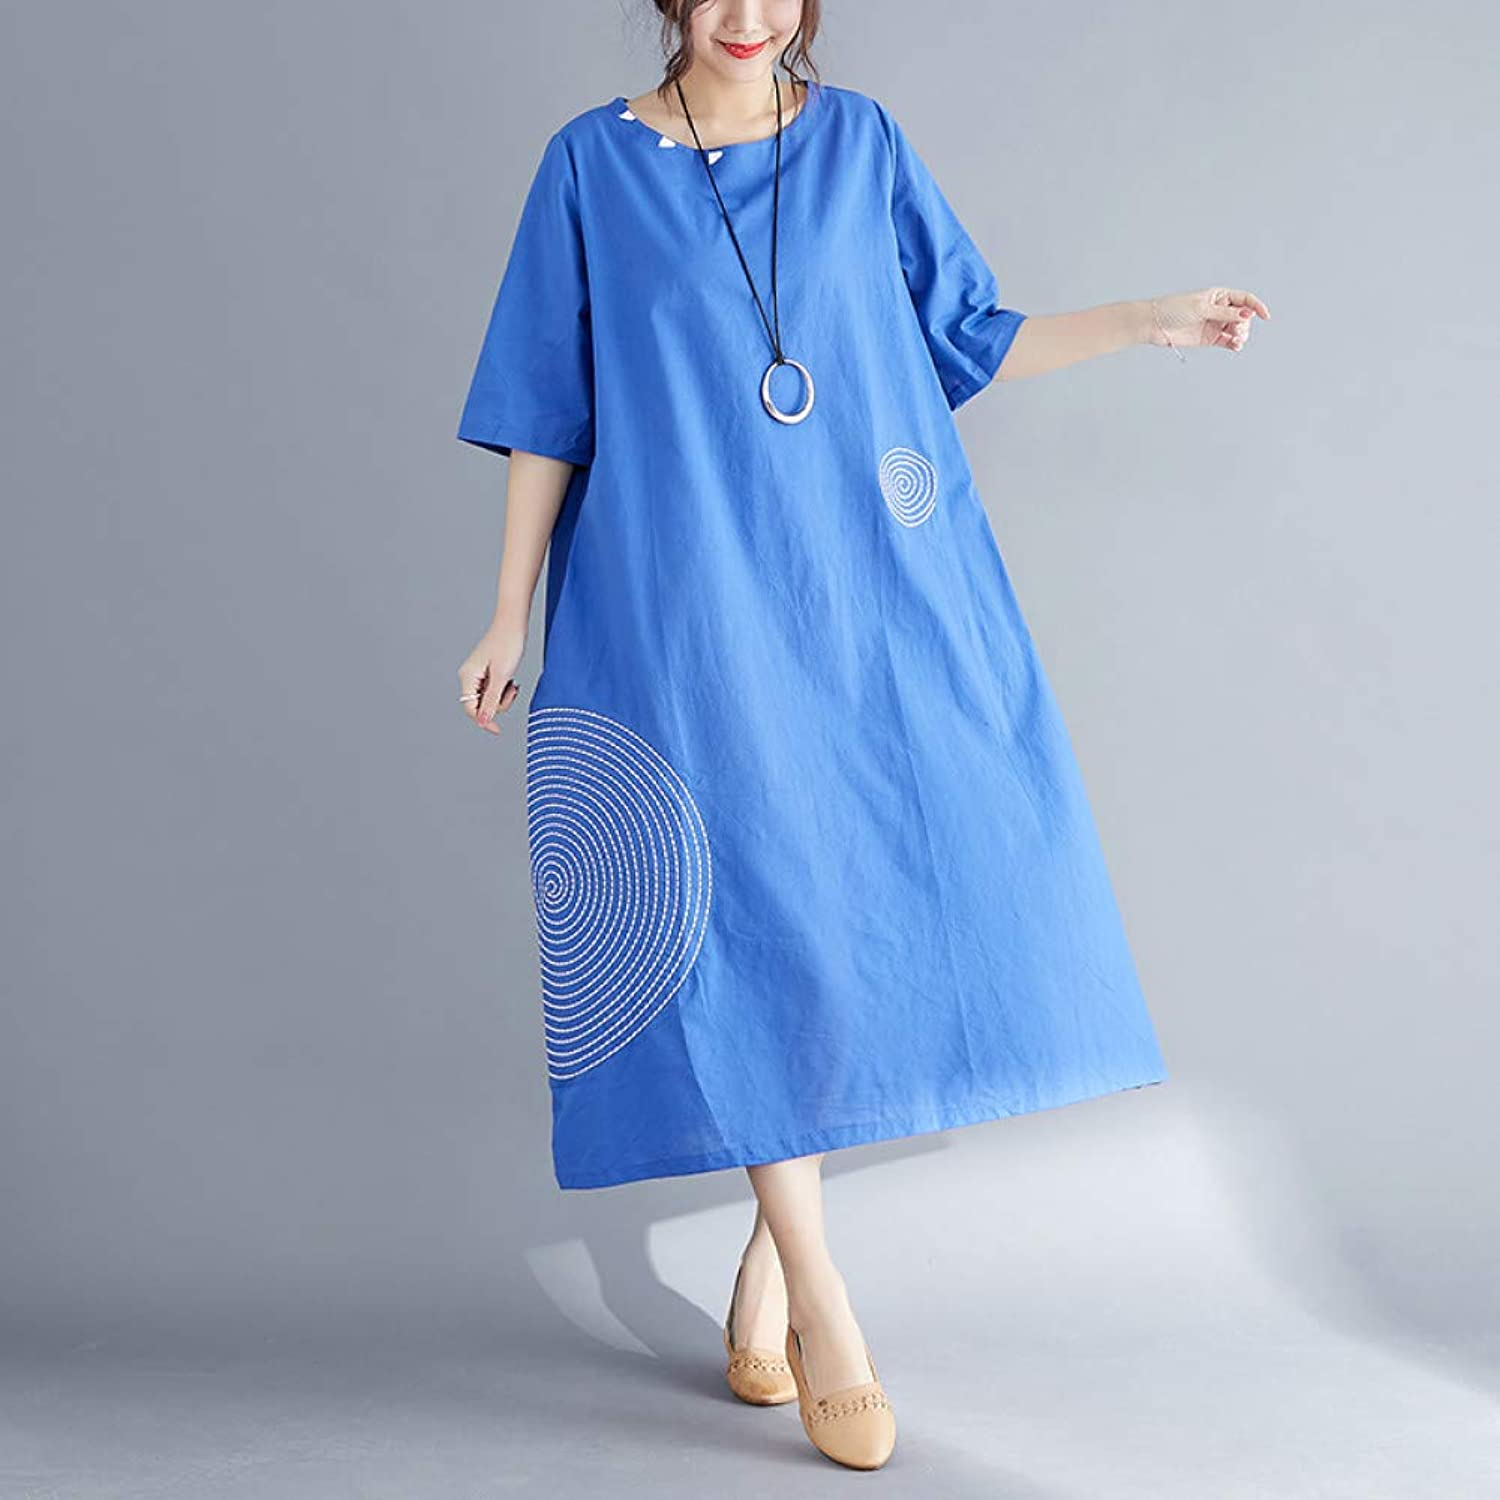 XIAOPANGHAI Summer New Solid color Cotton and Linen Large Size Embroidery Fat Loose Dress Female Casual Style Beach Holiday Dresses